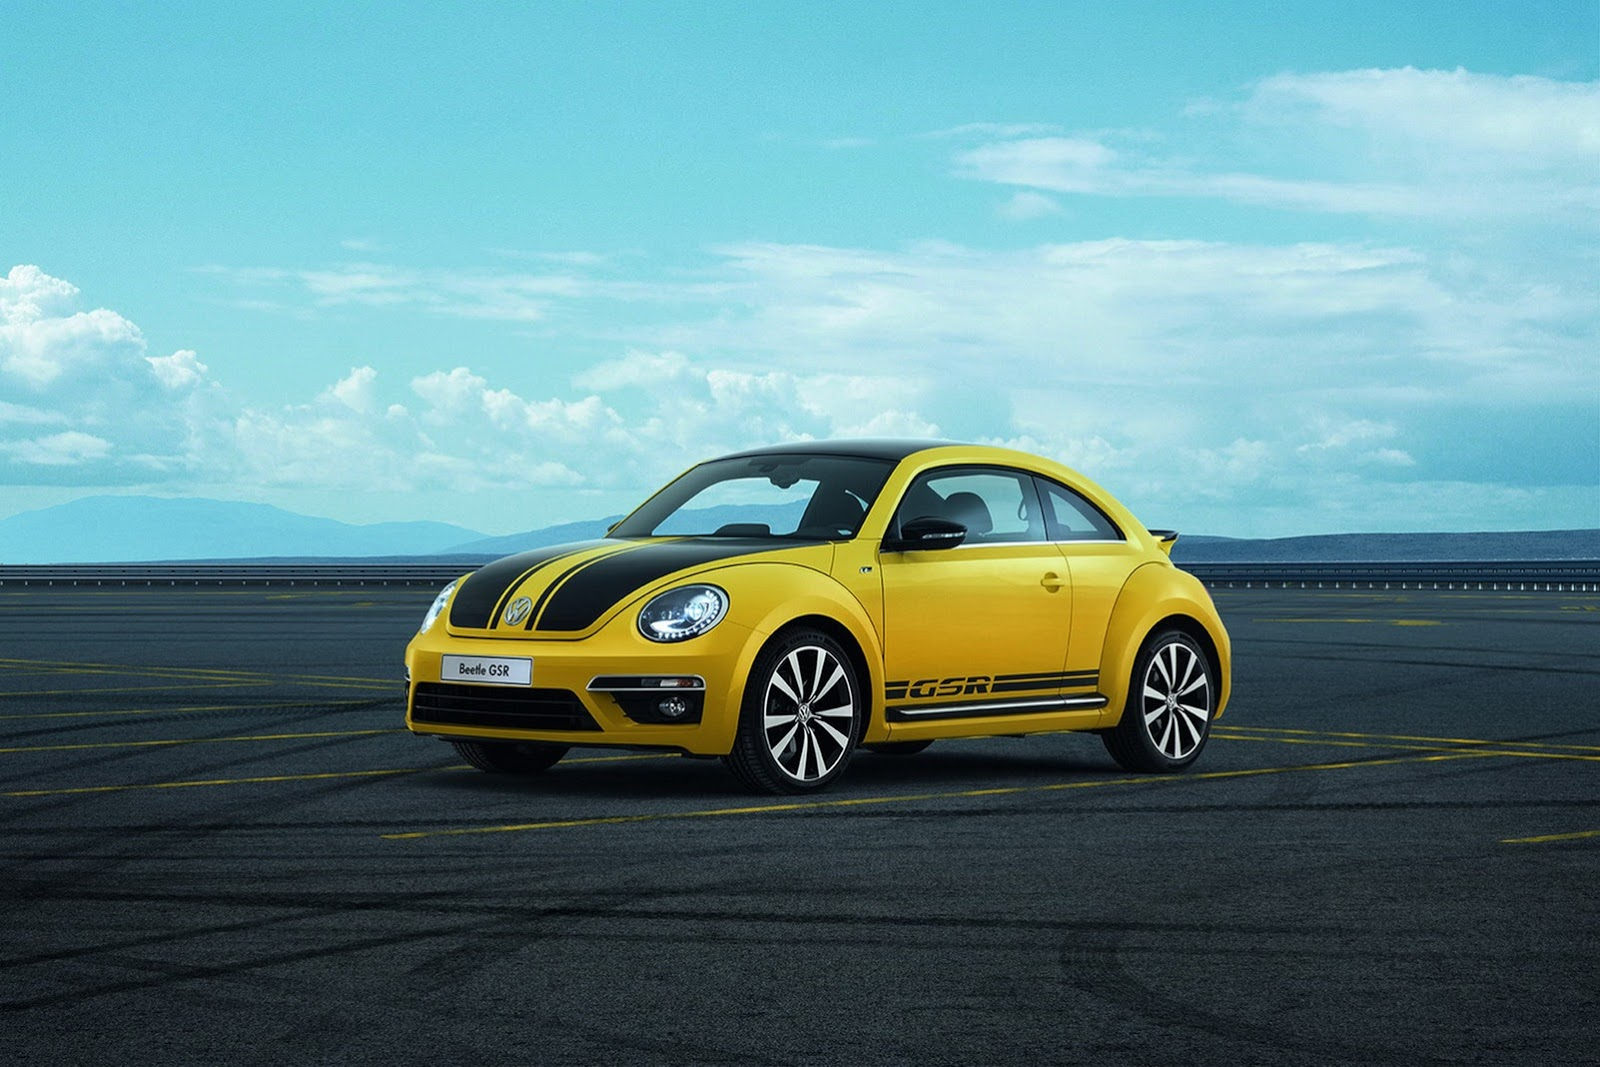 New Volkswagen Beetle GSR arrives in the UK